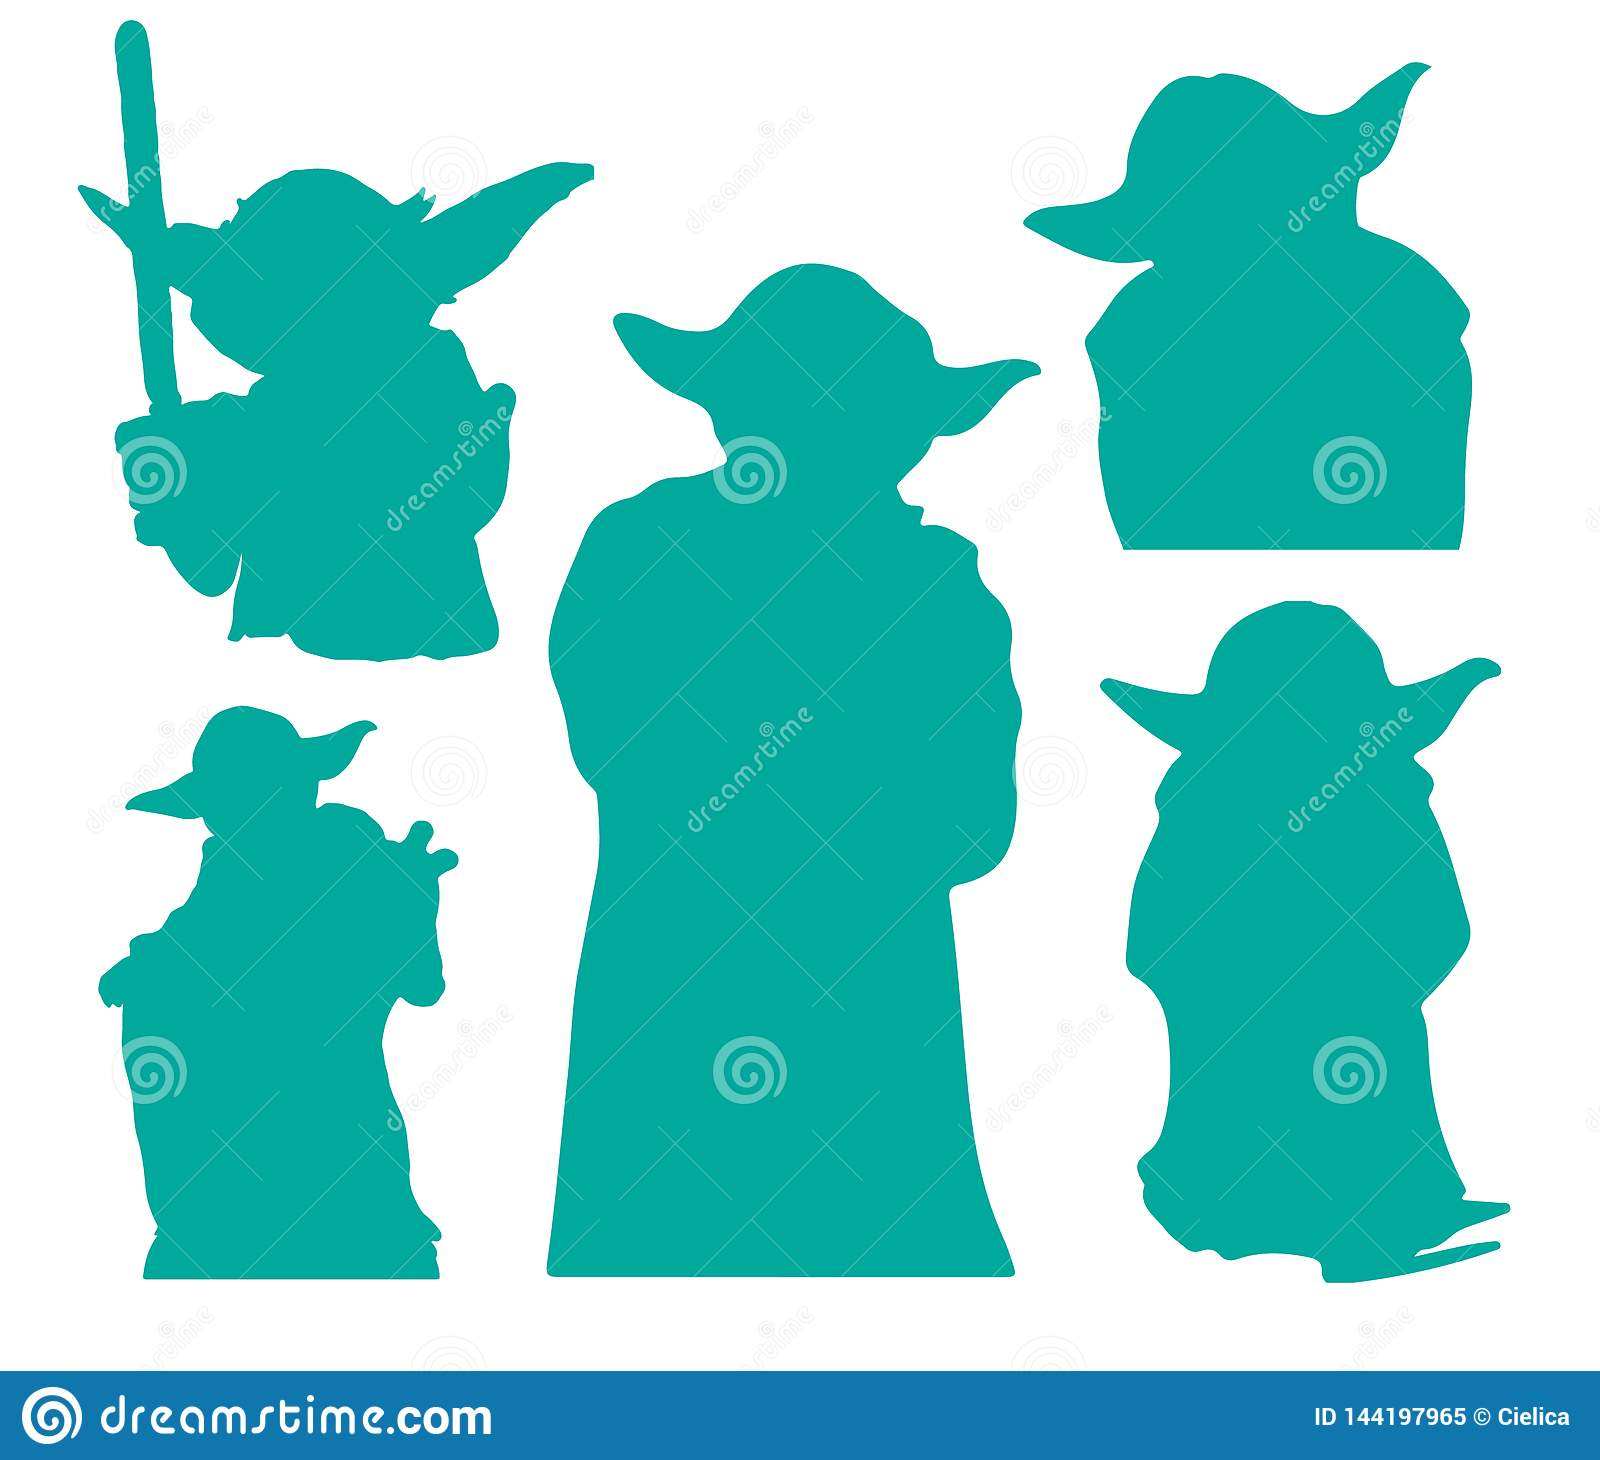 Yoda Star Wars Silhouettes EPS Vector Clipart Cutting Files